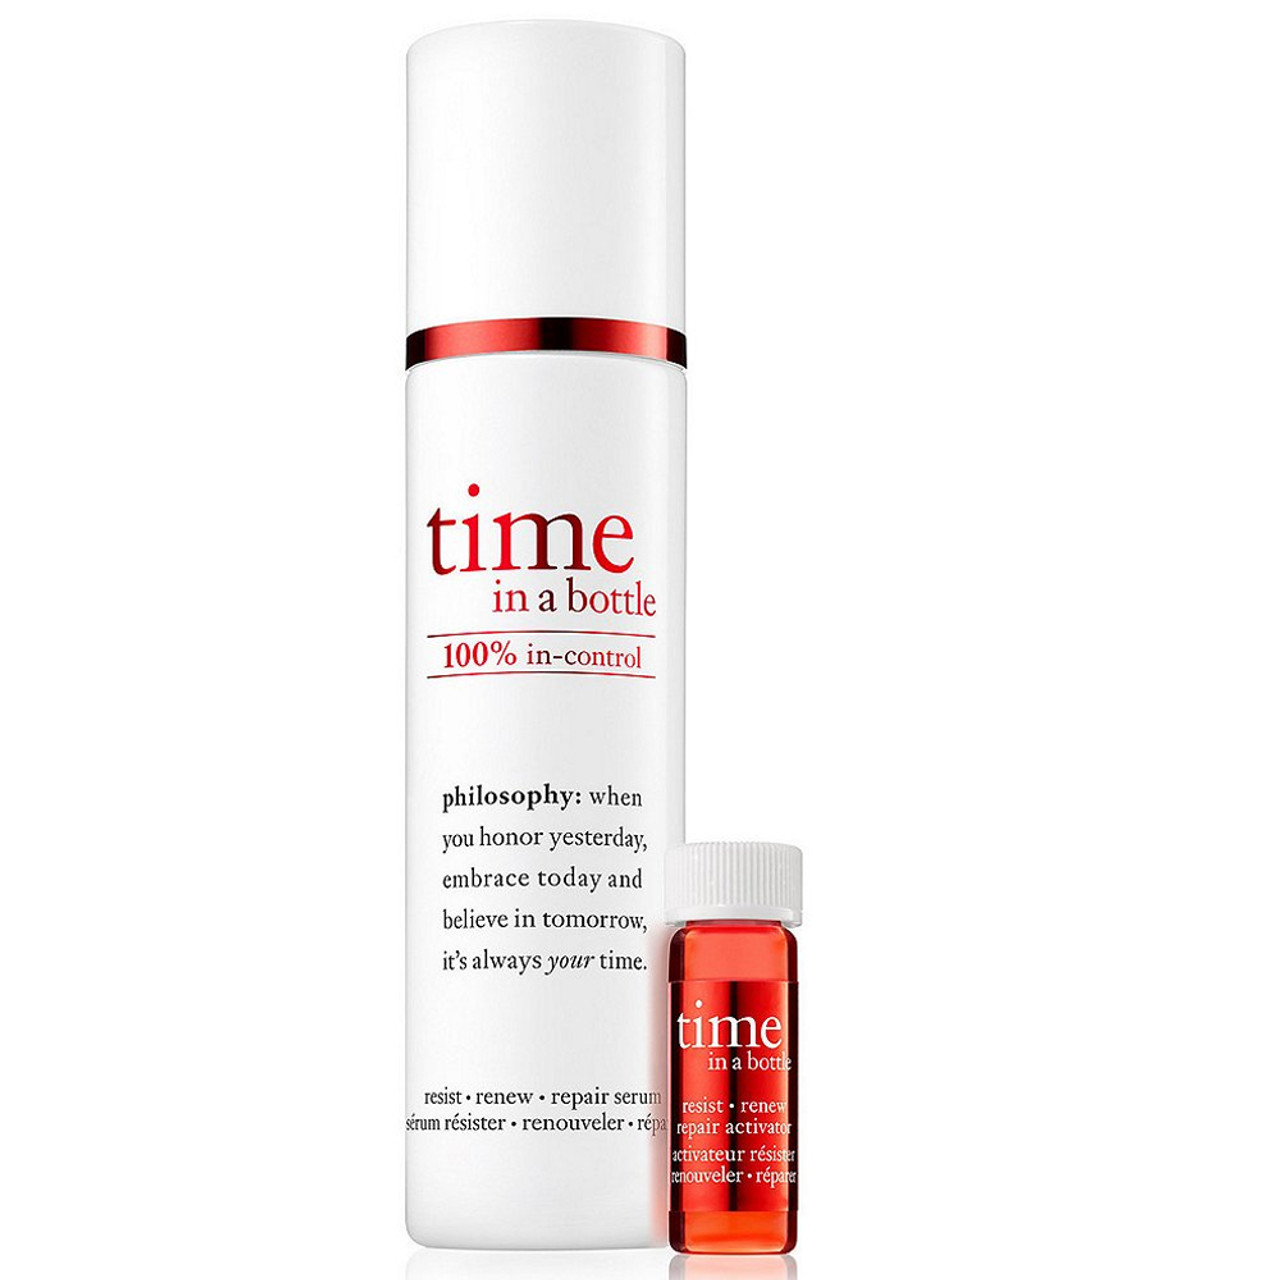 philosophy Time in a Bottle Age-Defying Vitamin C Serum